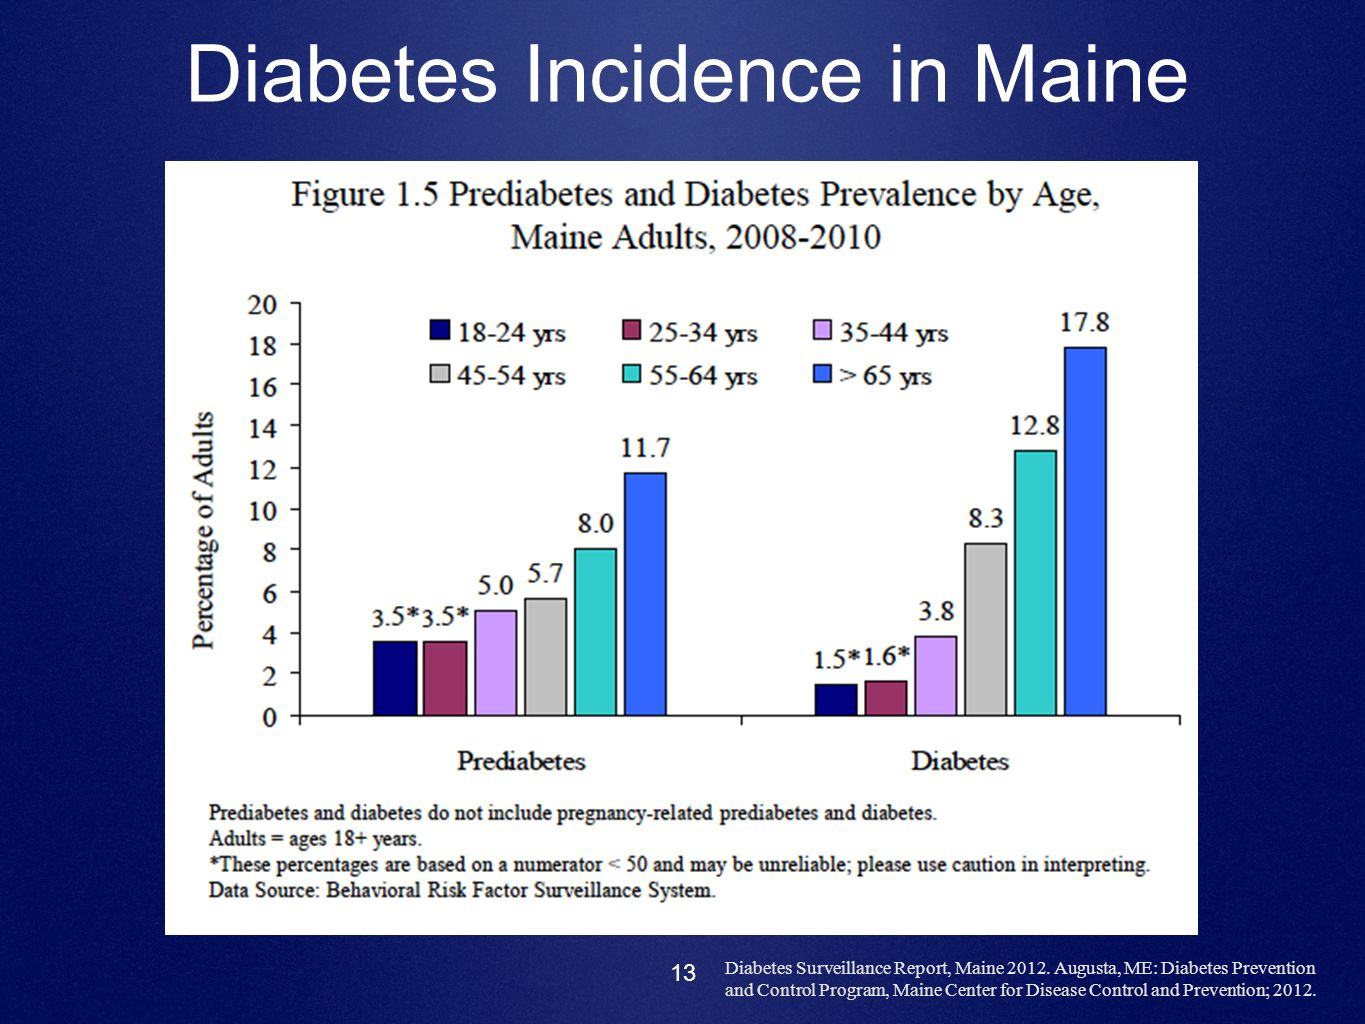 Diabetes Incidence in Maine